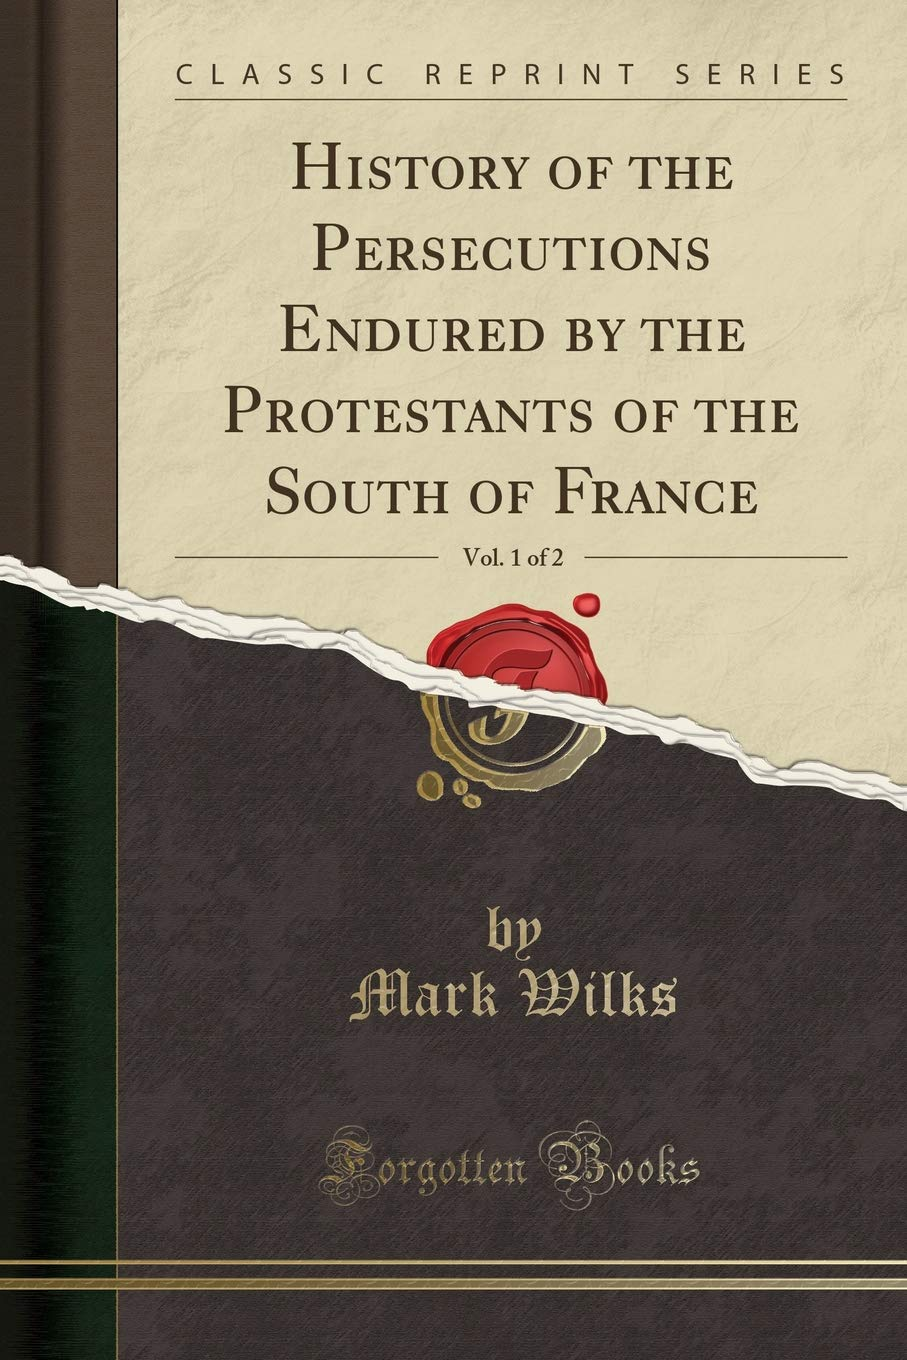 History of the Persecutions Endured by the Protestants of the South of France, Vol. 1 of 2 (Classic Reprint) ebook